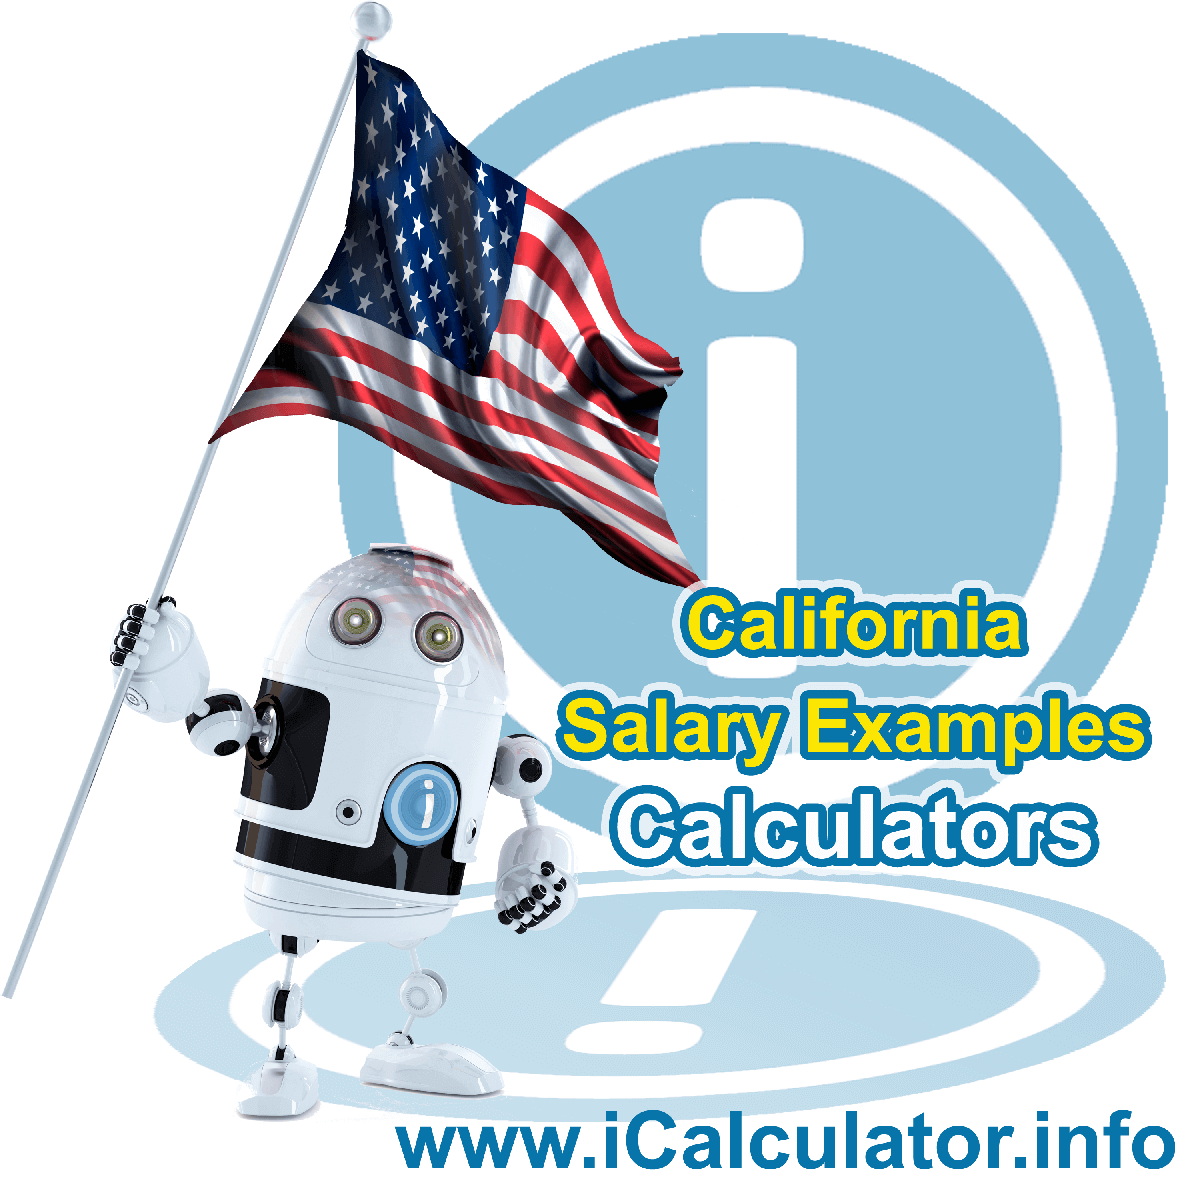 California Salary Example for $290.00 in 2021 | iCalculator | $290.00 salary example for employee and employer paying California State tincome taxes. Detailed salary after tax calculation including California State Tax, Federal State Tax, Medicare Deductions, Social Security, Capital Gains and other income tax and salary deductions complete with supporting California state tax tables